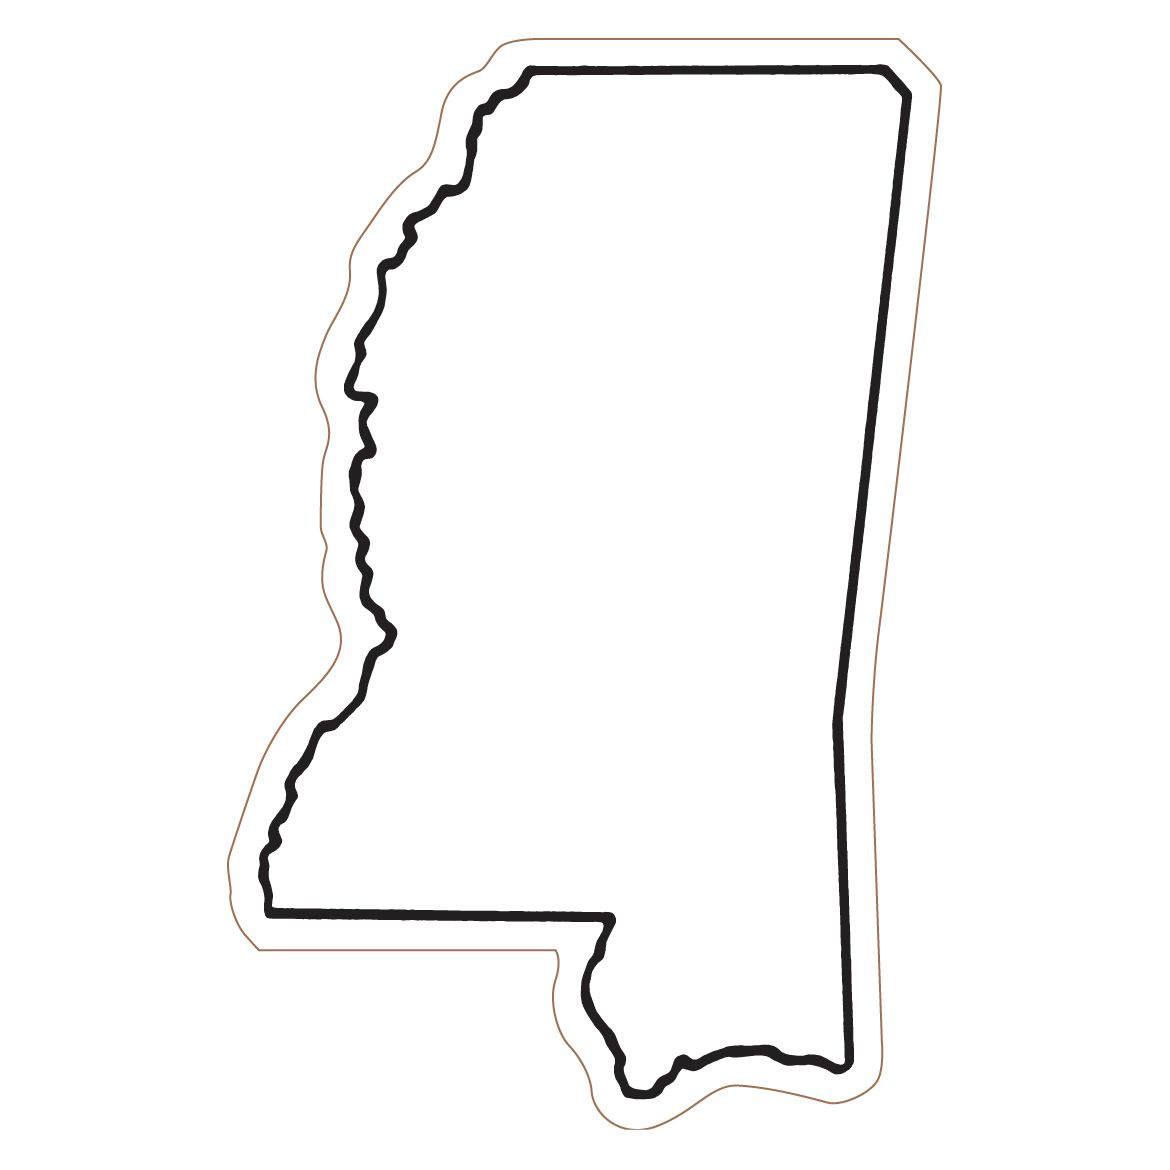 Mississippi State Outline Clipart